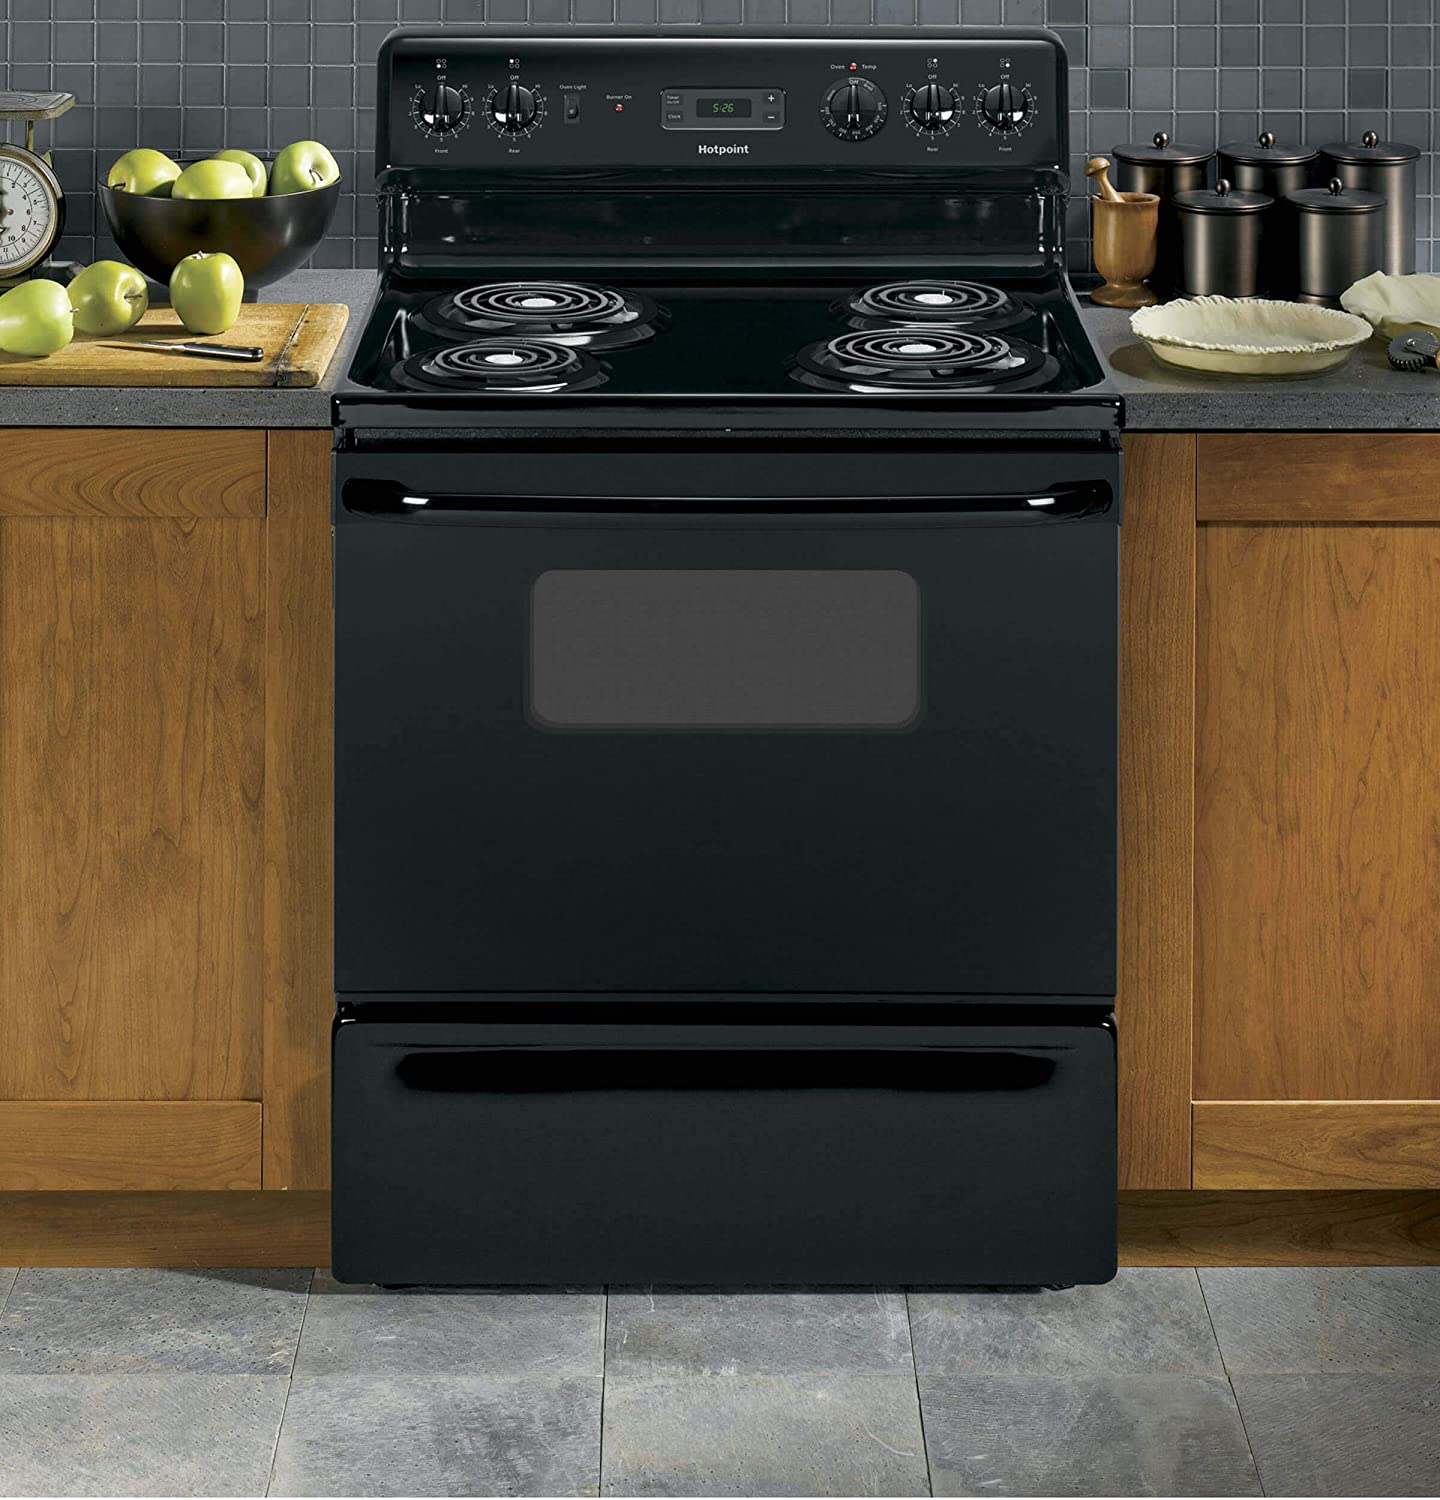 Amazon.com: Hotpoint gidds-53 – 6567 Hotpoint 30